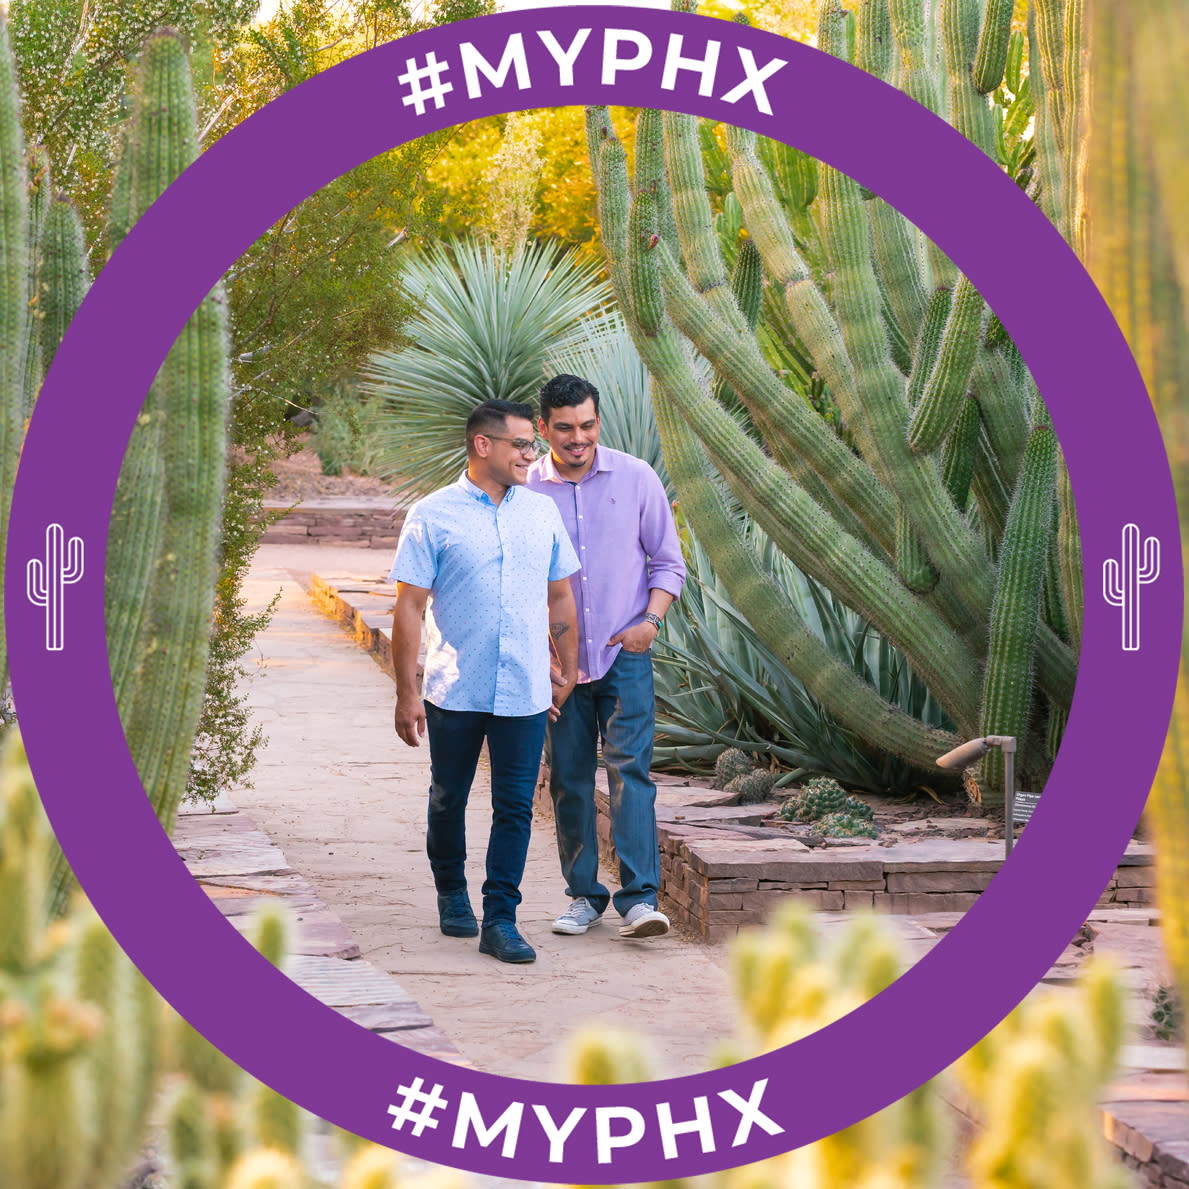 A Facebook frame with a purple circle with a cactus and #myphx